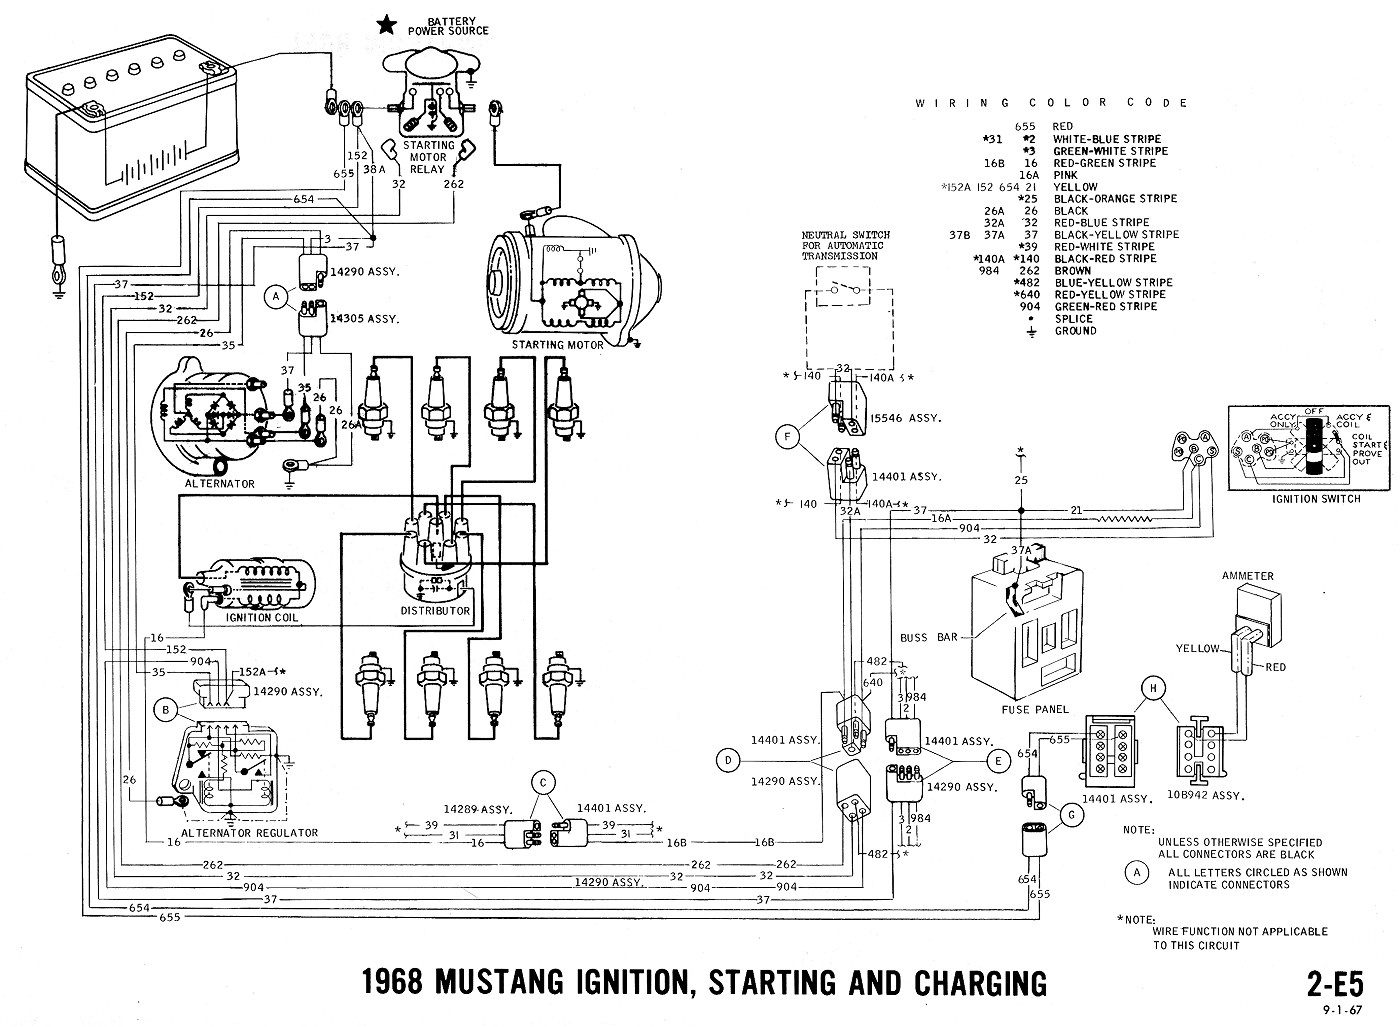 68 plymouth wiring diagram, Wiring diagram